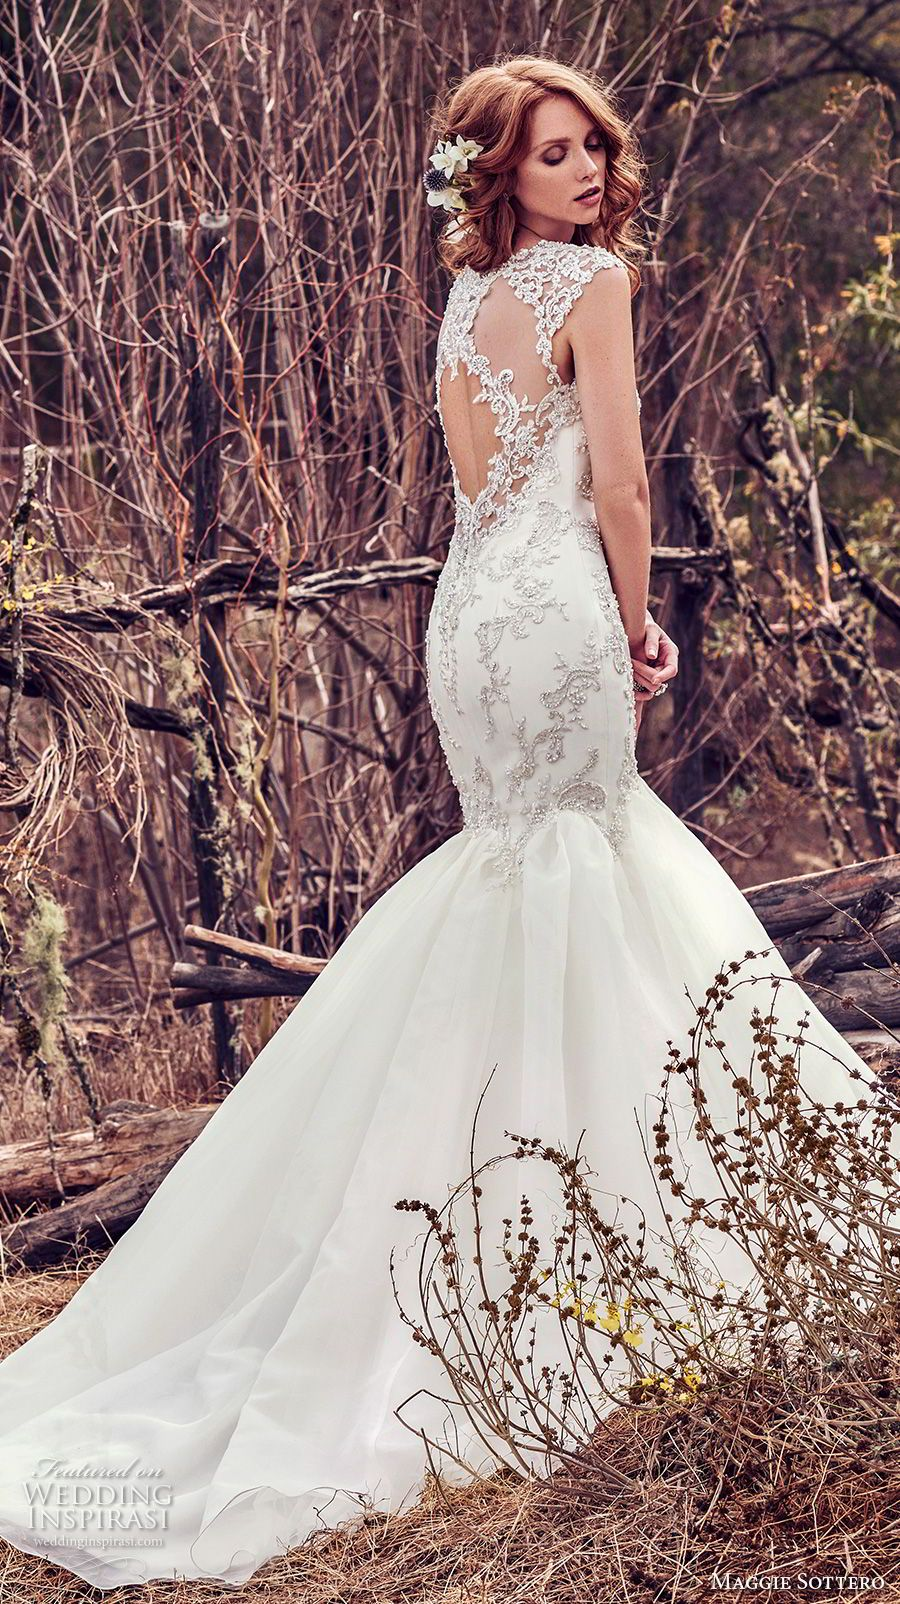 7d4e2919eb19 maggie sottero fall 2017 bridal cap sleeves scoop neckline heavily  embellished beaded bodice elegant mermaid wedding dress keyhole back chapel  train (978) ...